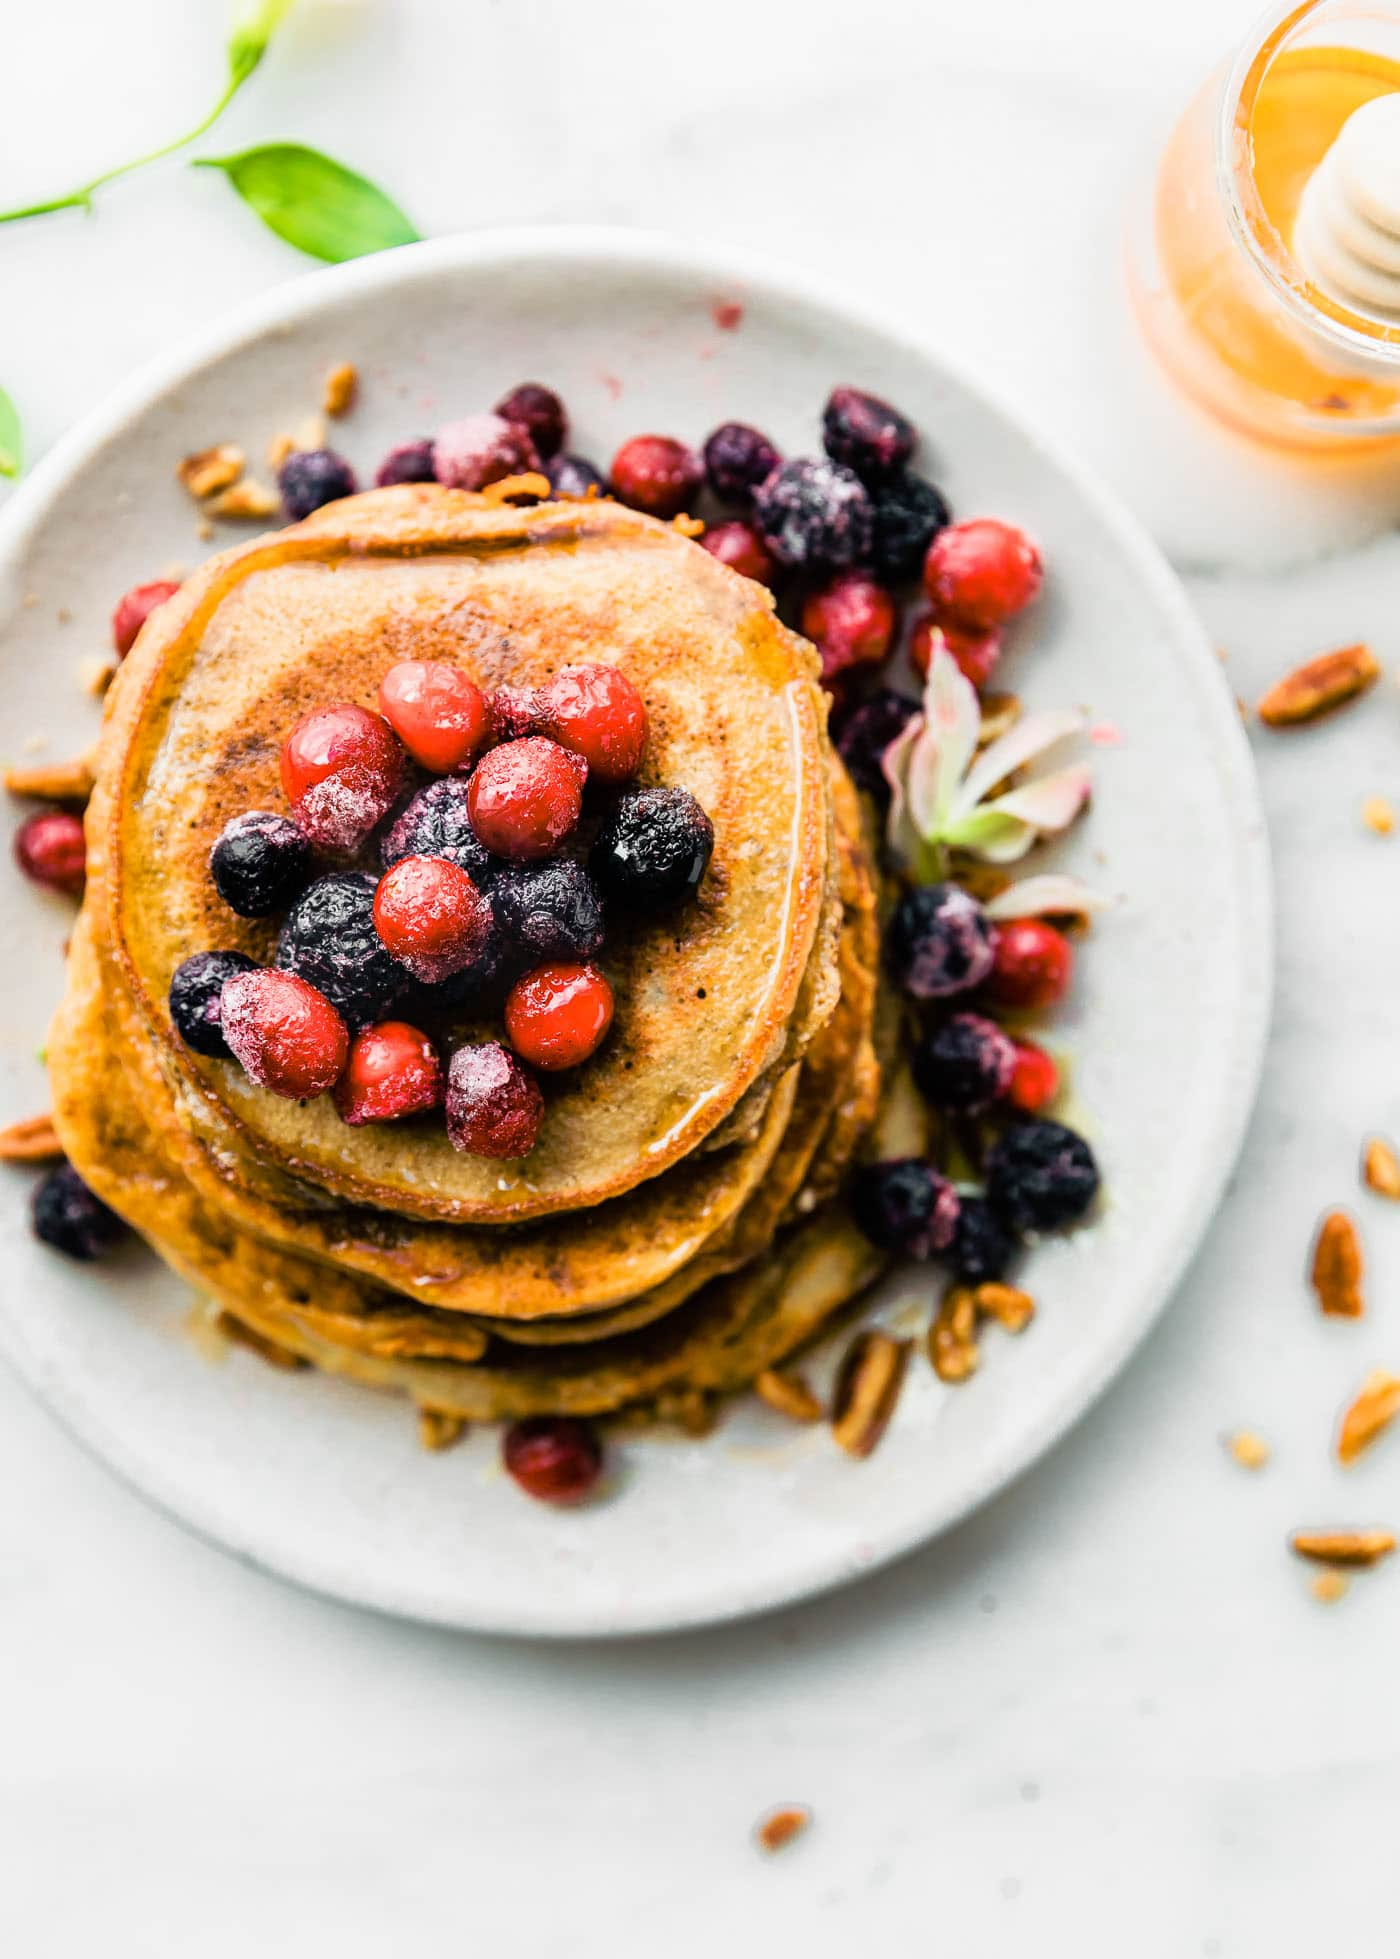 Learn 2 ways to make the most delicious and nutritious coconut flour pancakes! These grain free coconut flour pancakes can be made naturally sweet with the addition of banana, or lower carb and sugar free with no sweetener added. Either way, you'll  be hooked! Paleo friendly and dairy free. #paleo #lowcarb #pancakes #healthy #breakfast #dairyfree